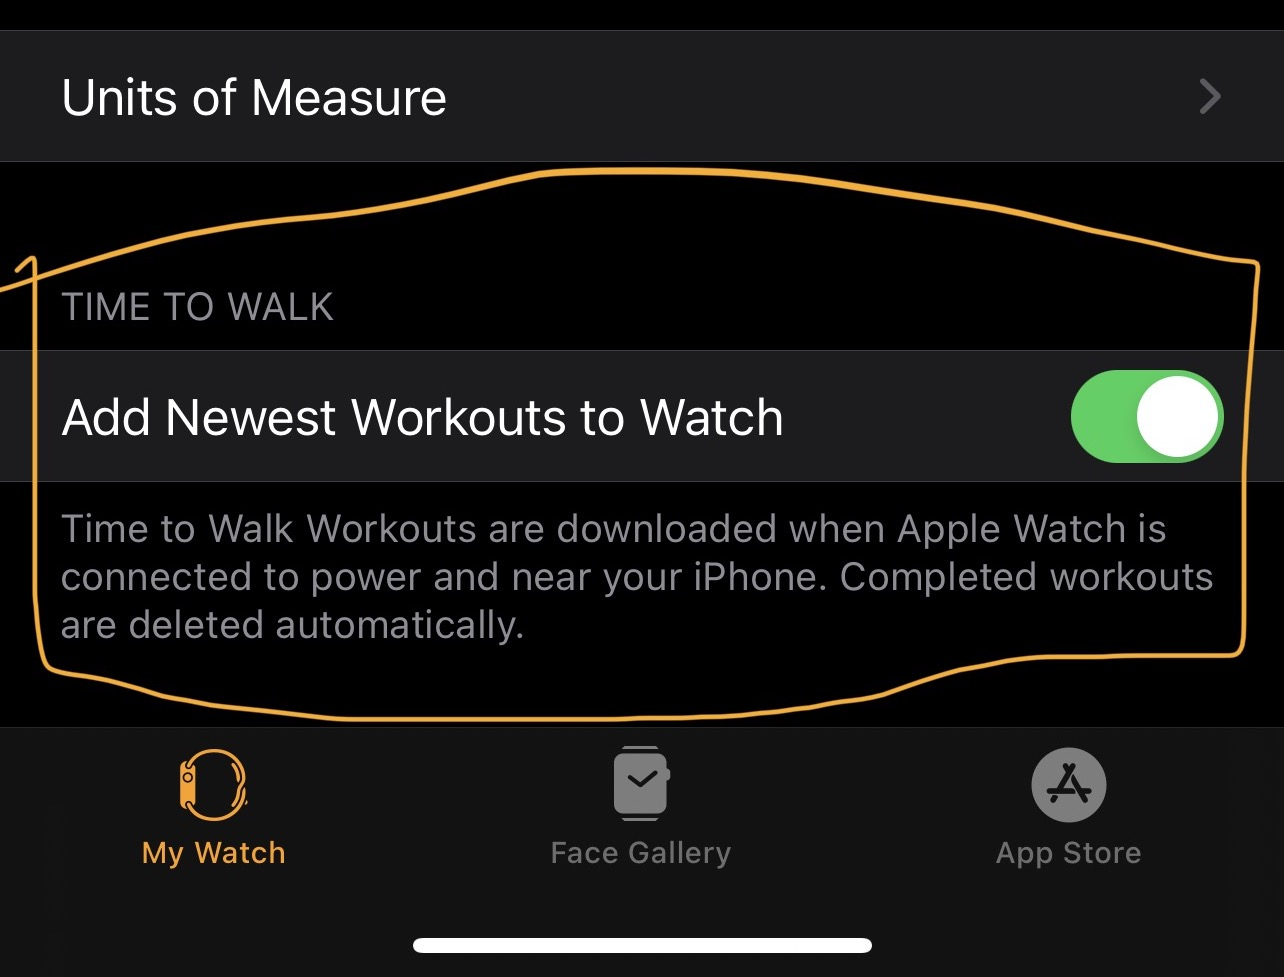 """A screenshot of the new """"Add Newest Workouts to Watch"""" setting in the companion Watch app on iOS 14.4"""